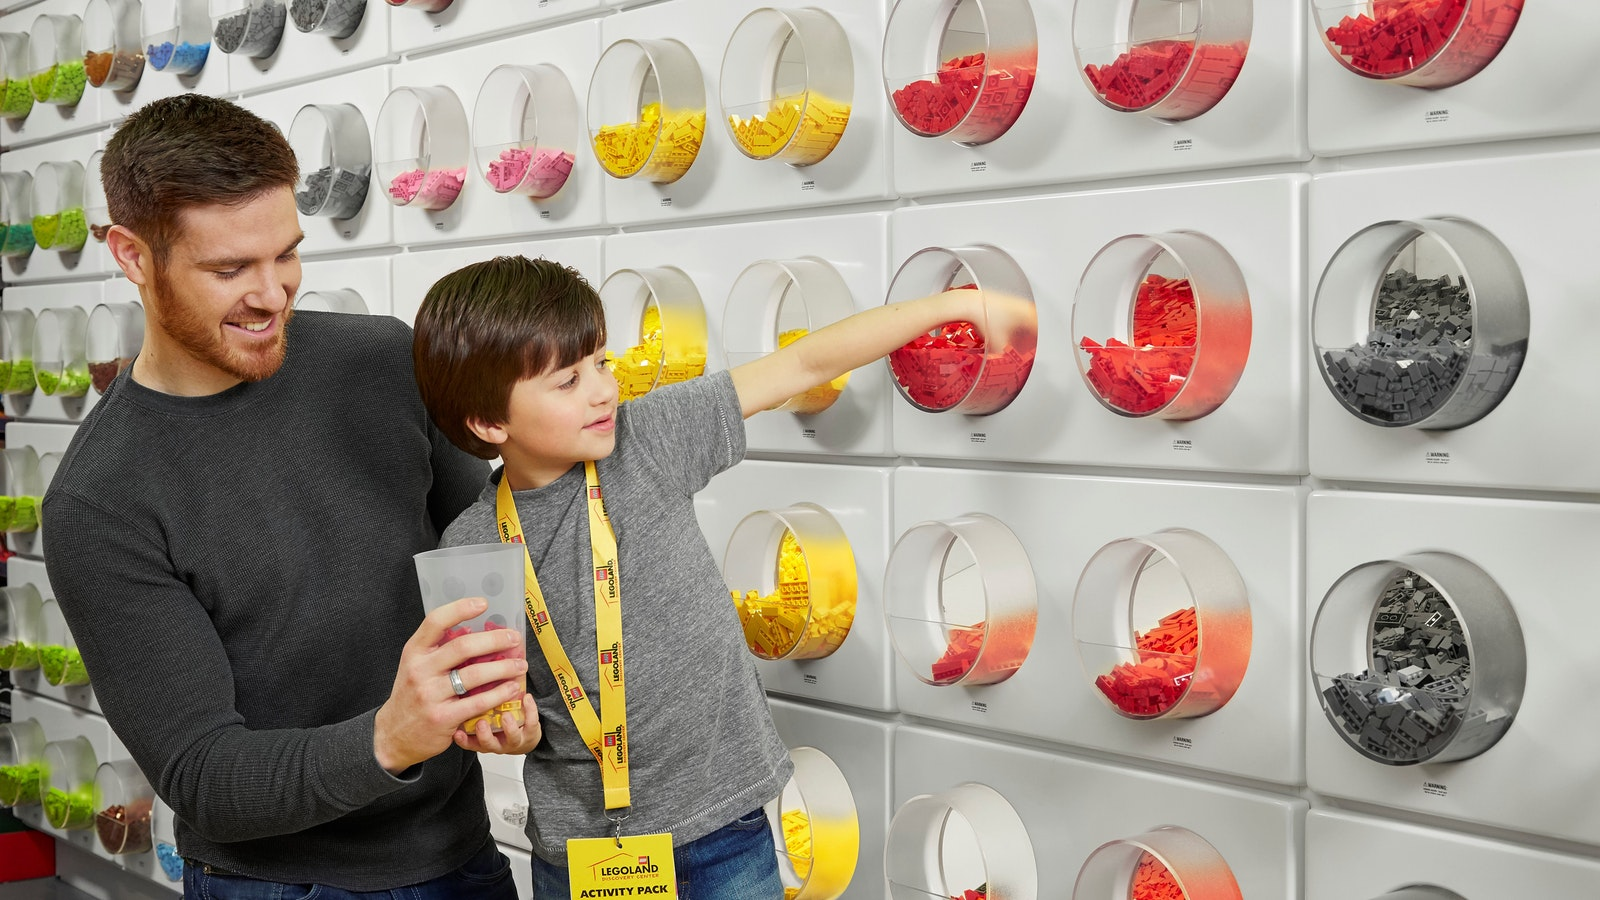 Take home a souvenir from your LEGO adventure or pop by any time!